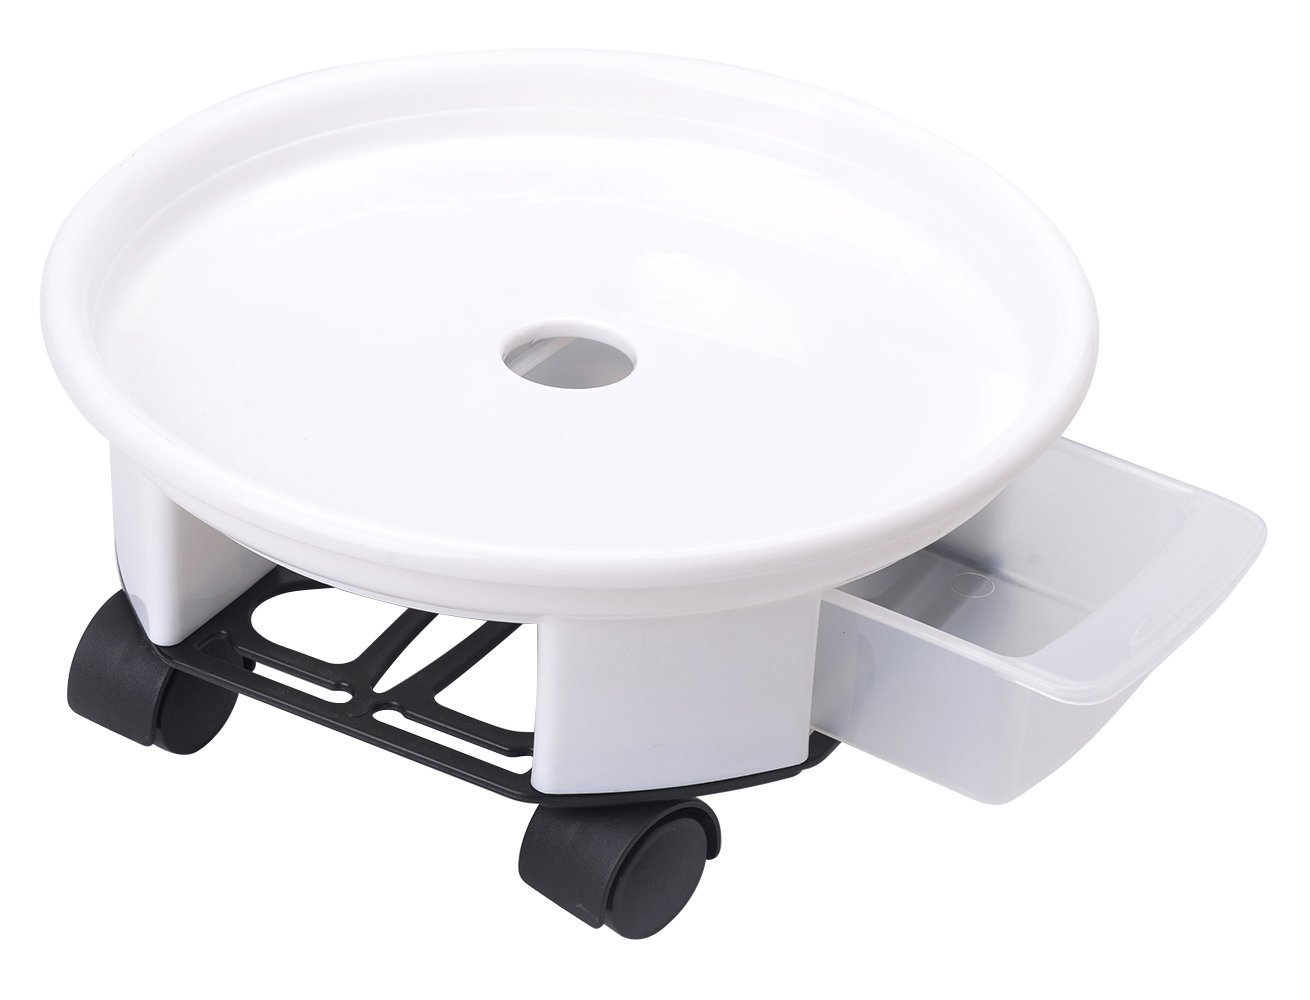 Antetok 10.6'' Plant Caddy Round Plant Dolly Trolley Saucer Moving Tray Pallet with Wheels and a Water Container White